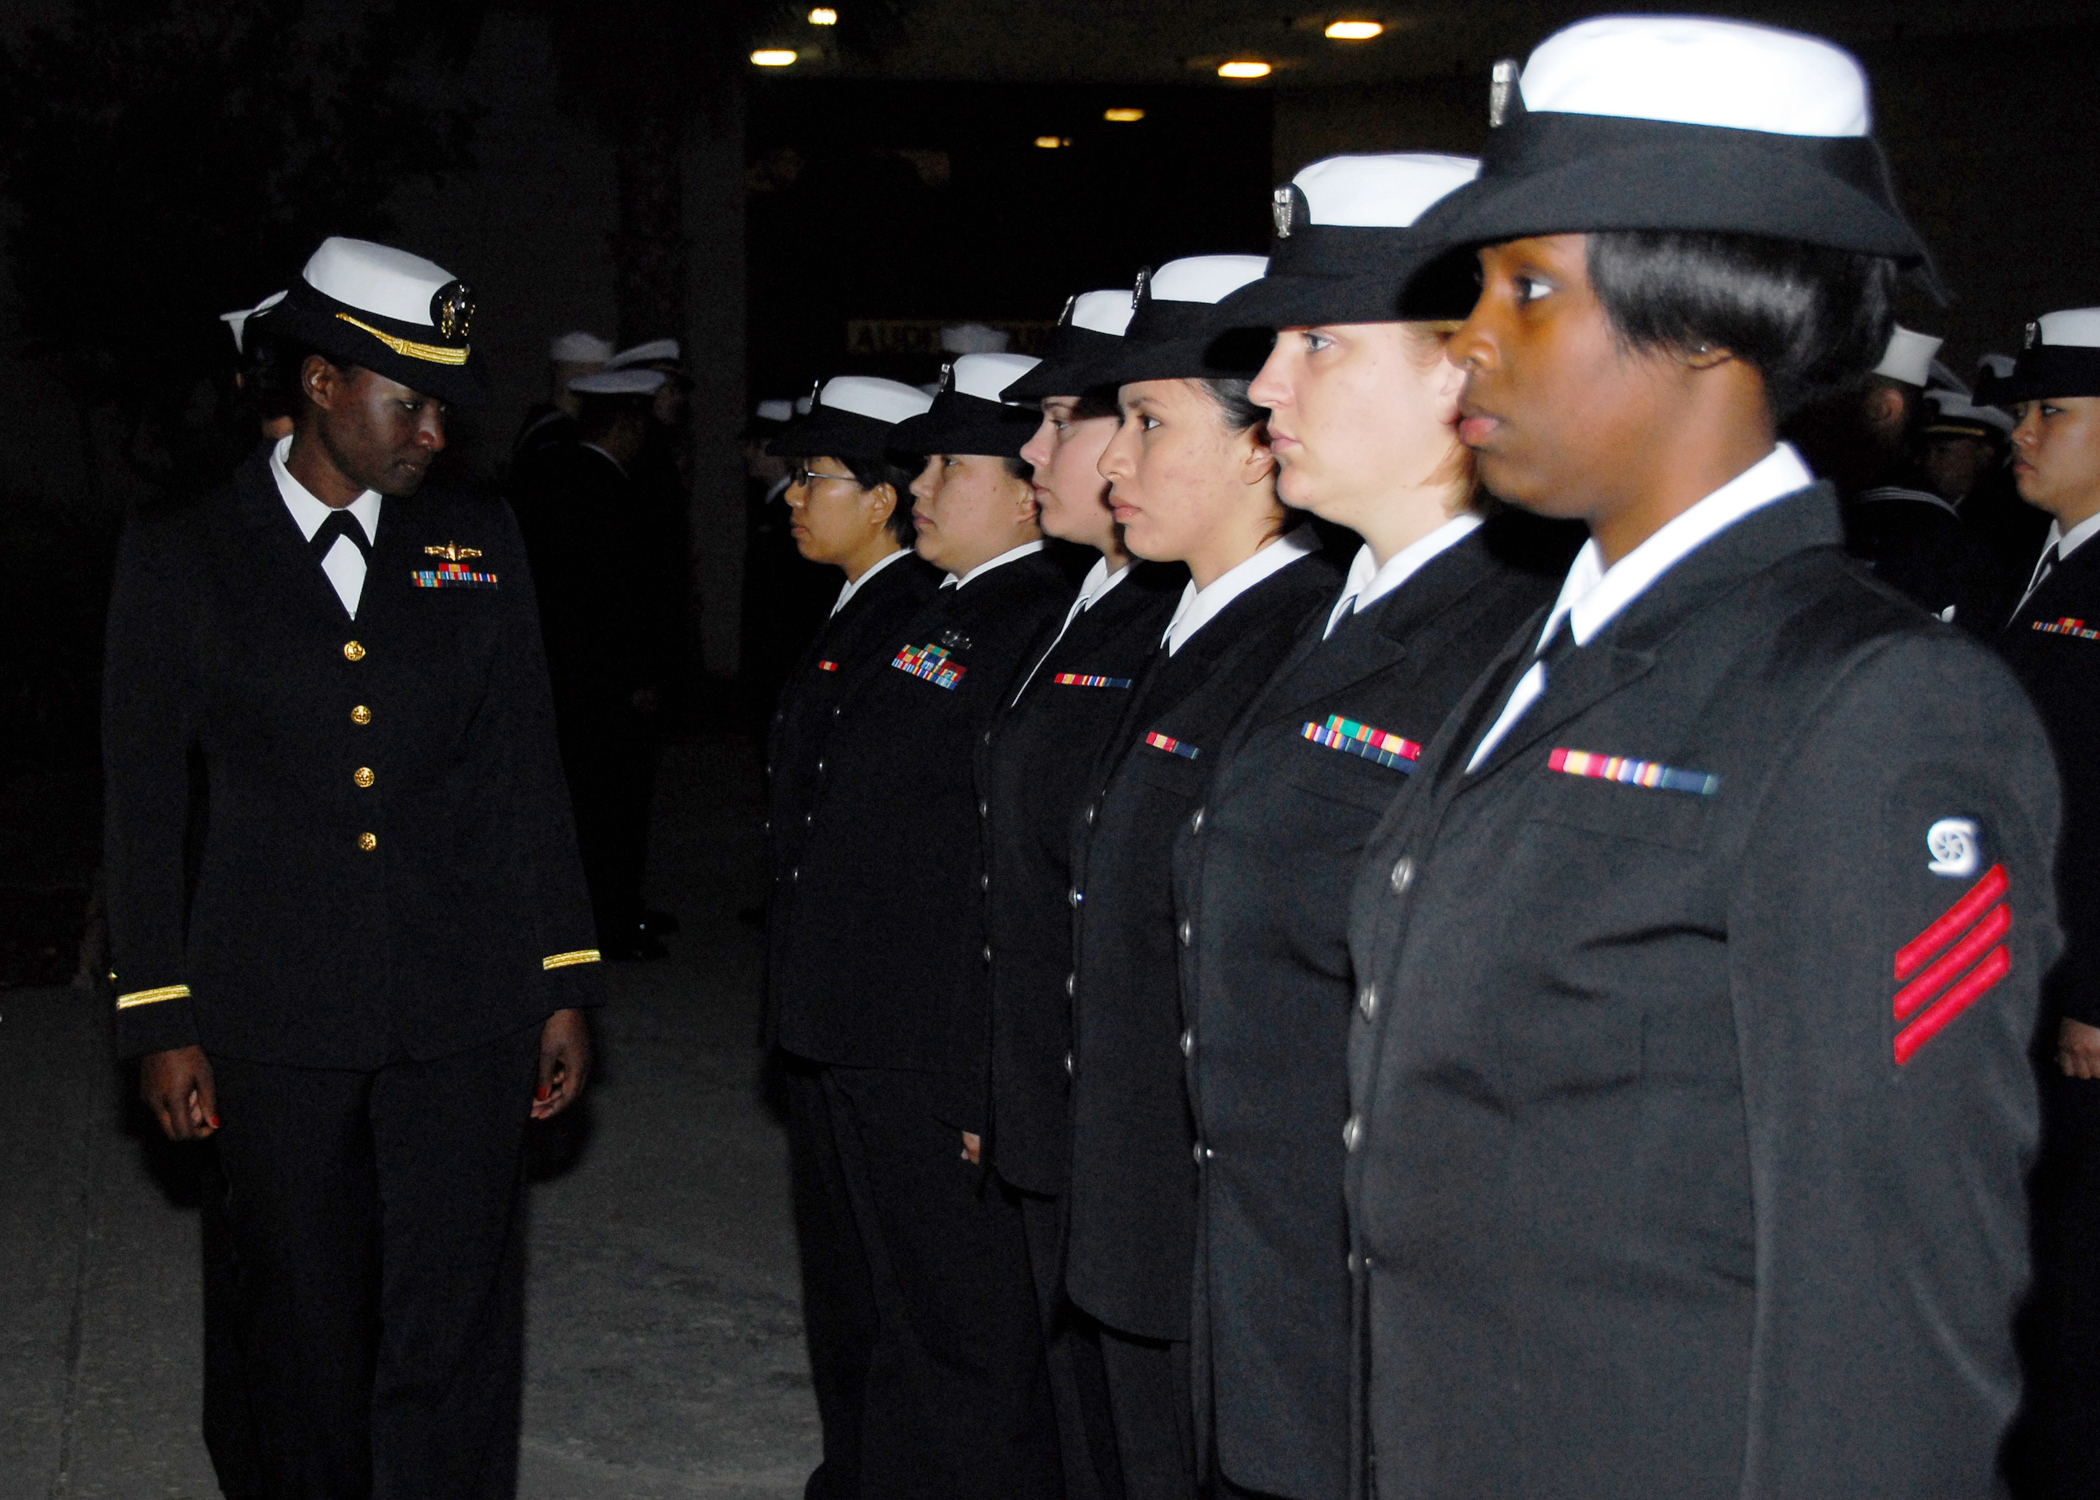 File:US Navy 081024-N-2565P-010 Ensign Ebony Miller inspects female ...